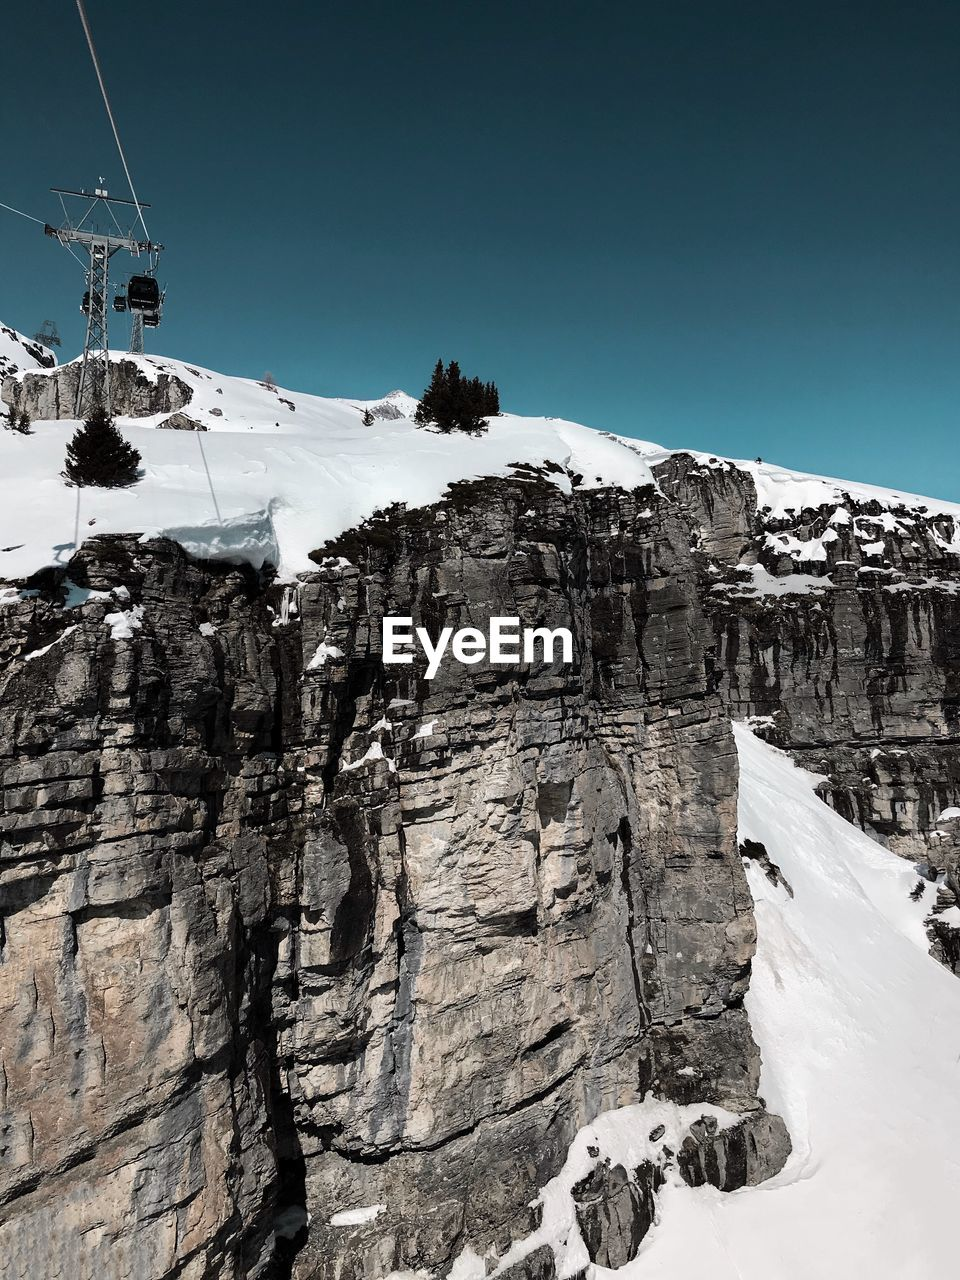 cold temperature, snow, winter, nature, mountain, beauty in nature, day, low angle view, outdoors, weather, scenics, rock - object, clear sky, tranquil scene, sky, tranquility, cliff, rocky mountains, no people, snowcapped mountain, ski lift